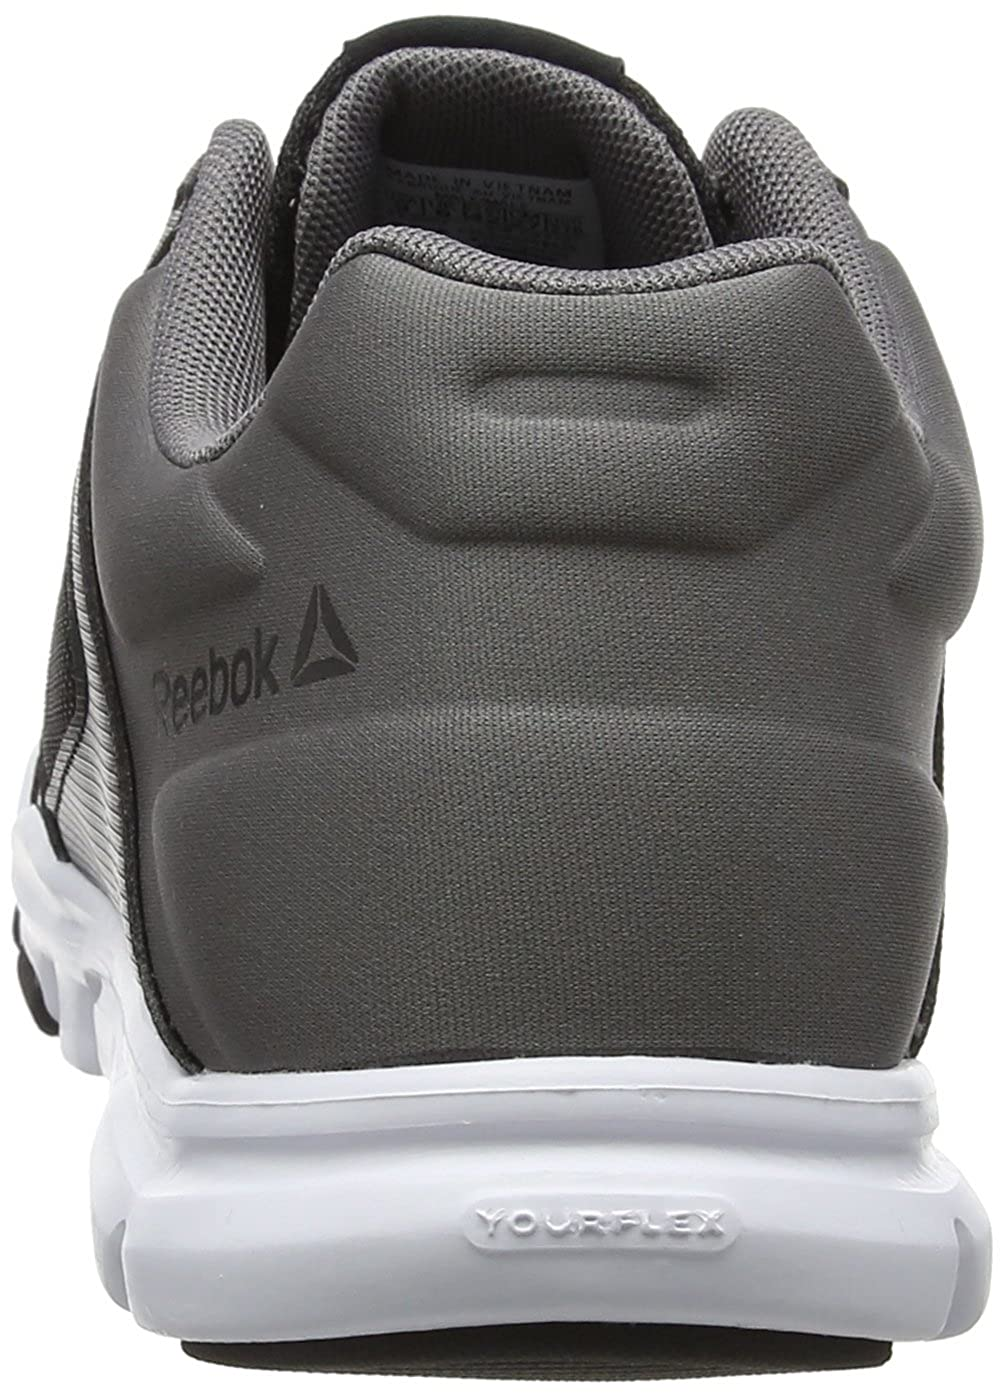 Reebok Herren Yourflex Train 10 10 10 Mt Fitnessschuhe  05da99